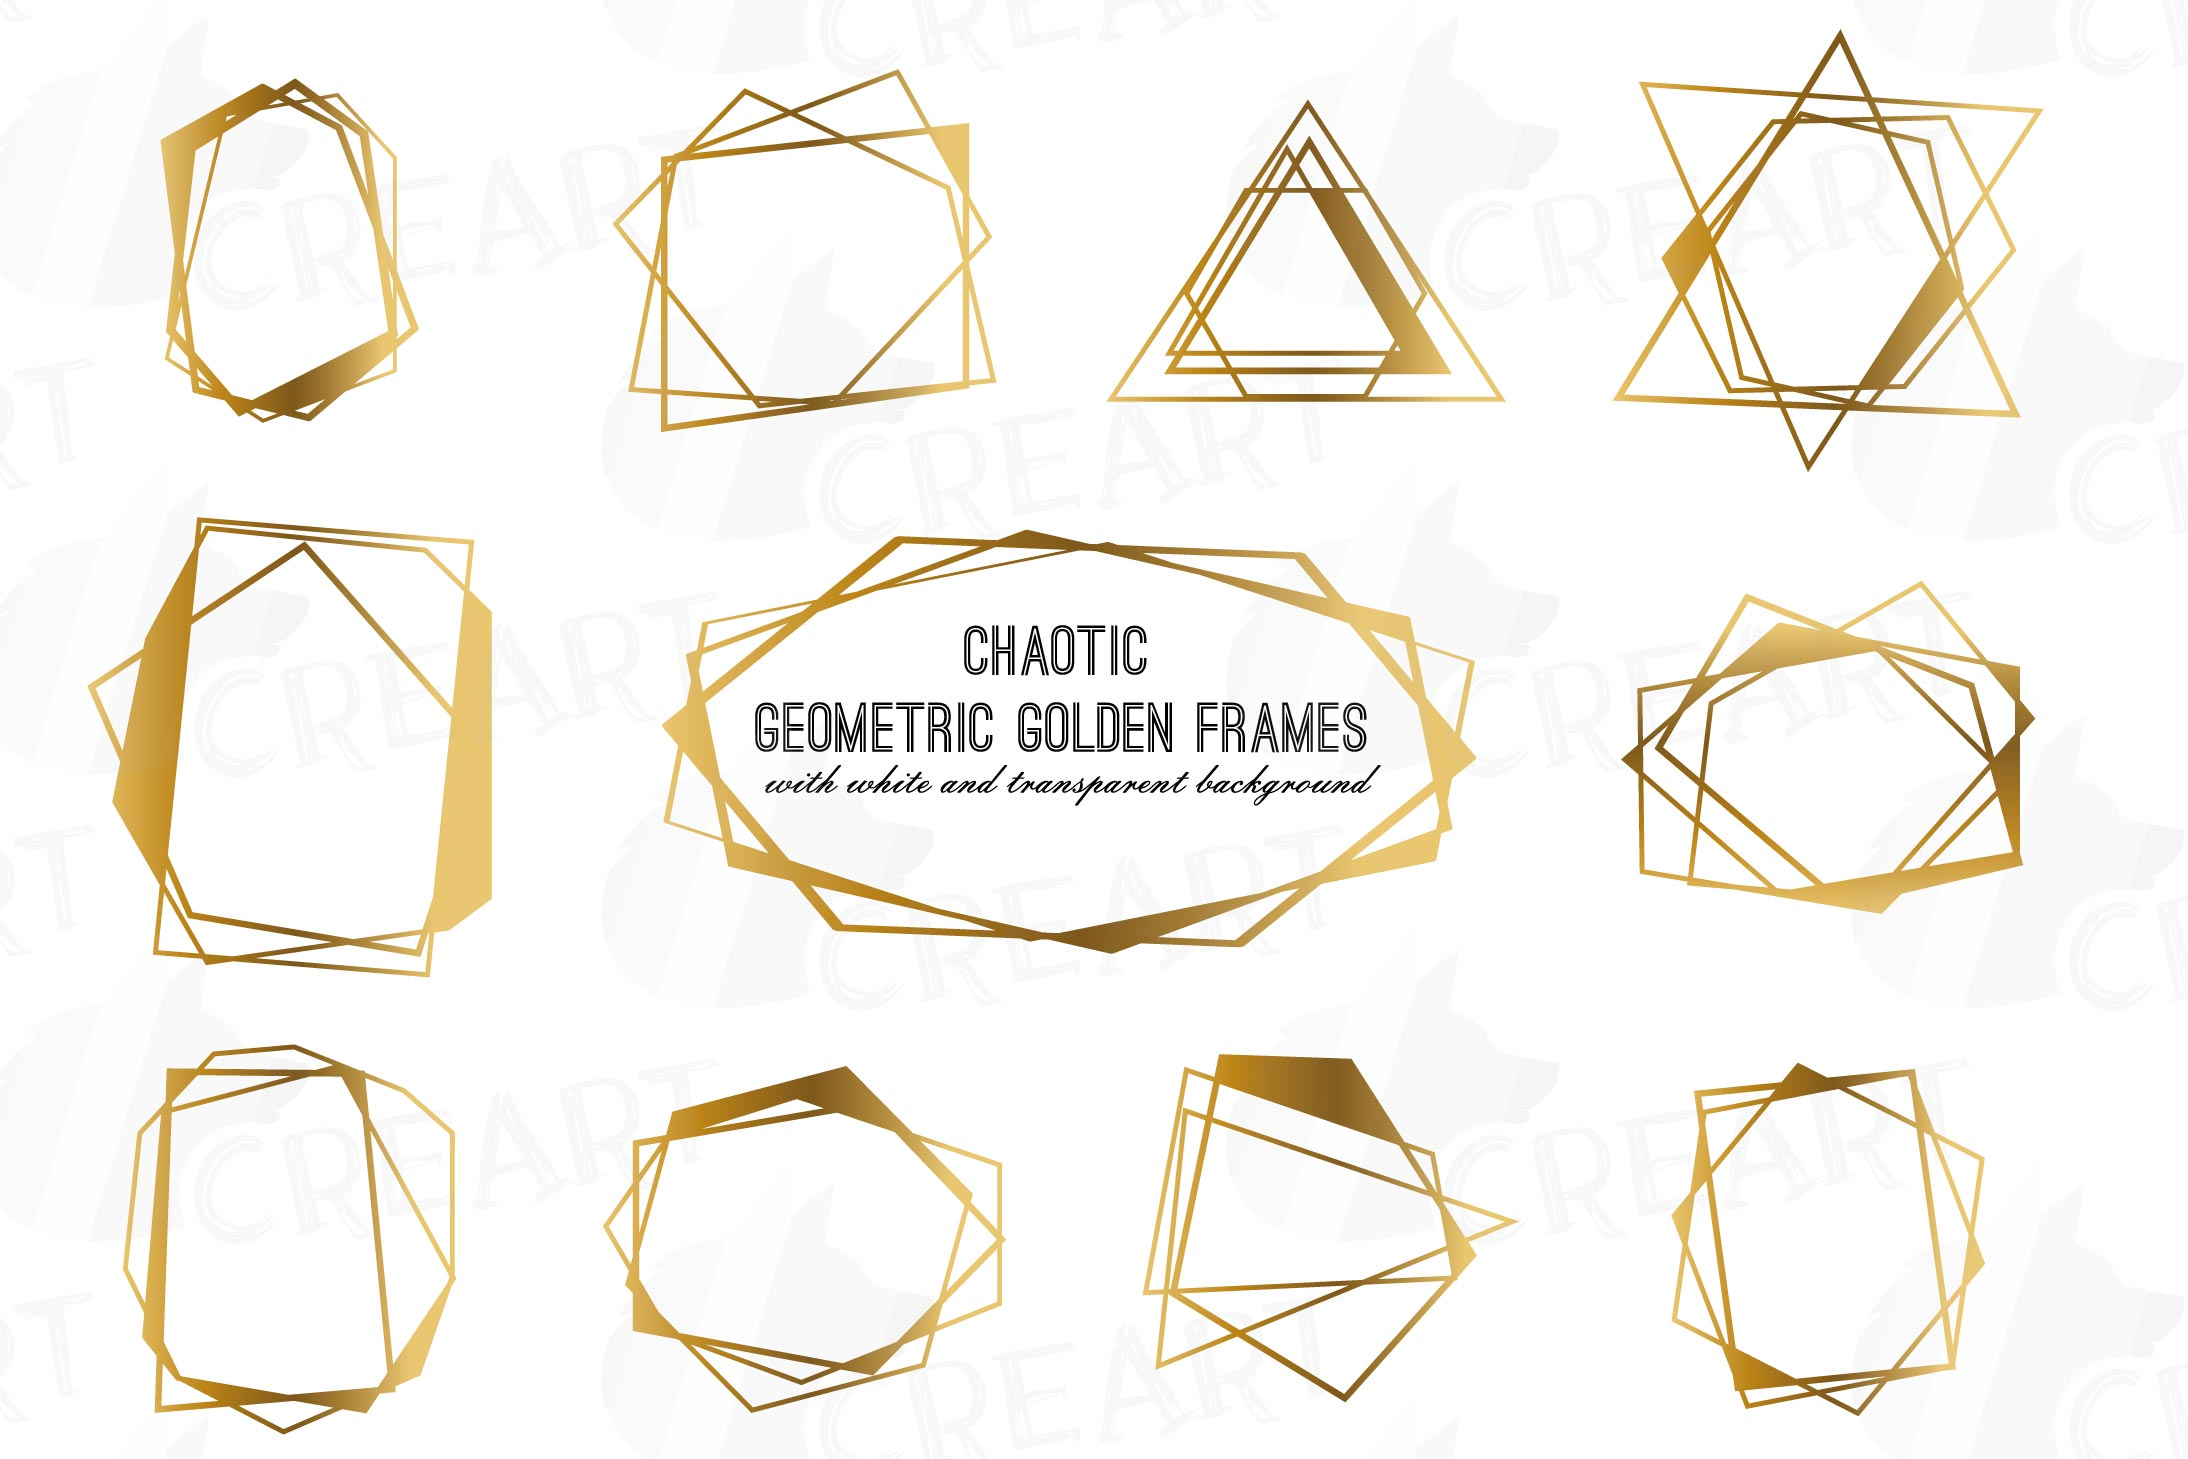 Chaotic geometric golden frames, lineal frames clip art example image 1